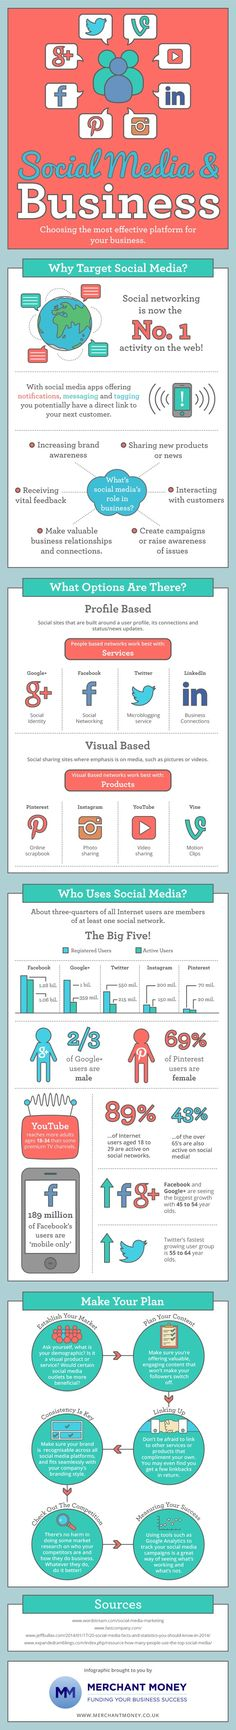 How to Choose The Most Effective Social Media Platform For Your Business